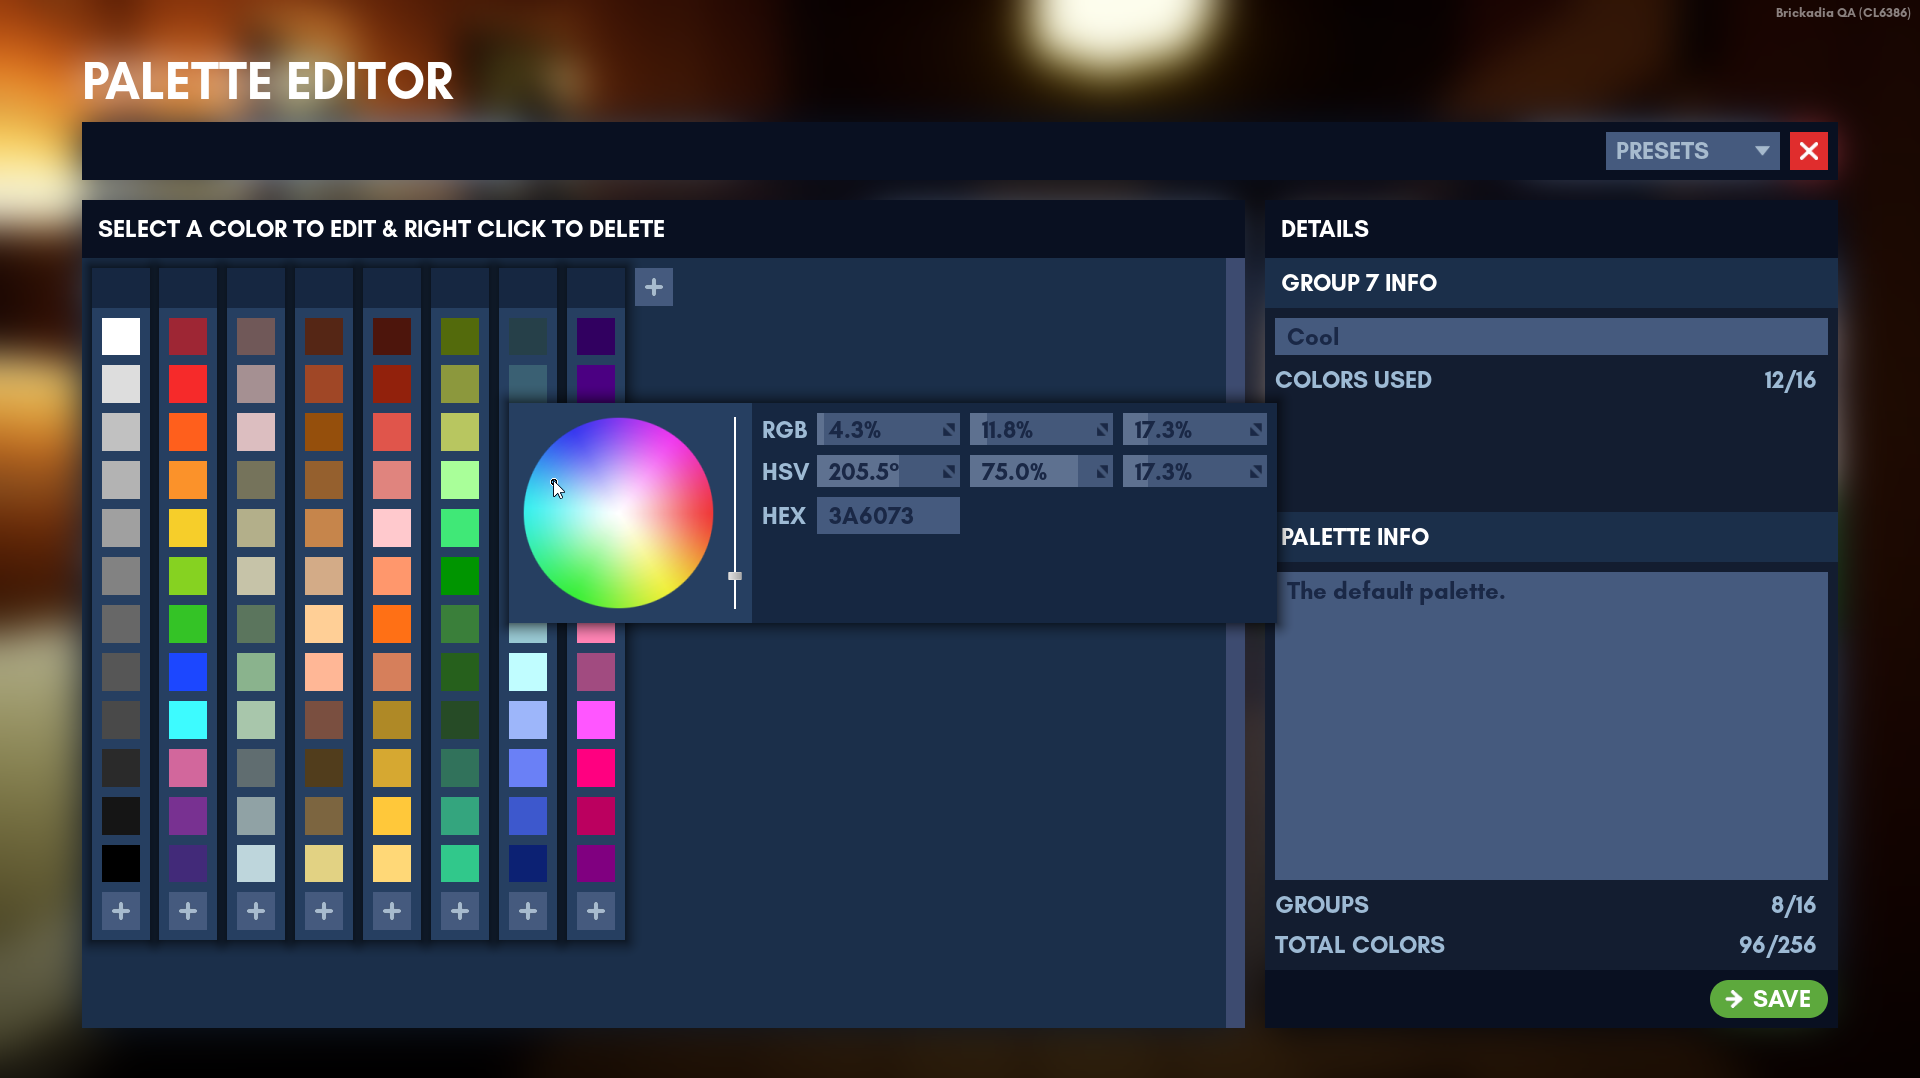 Modifying the new default palette in the editor